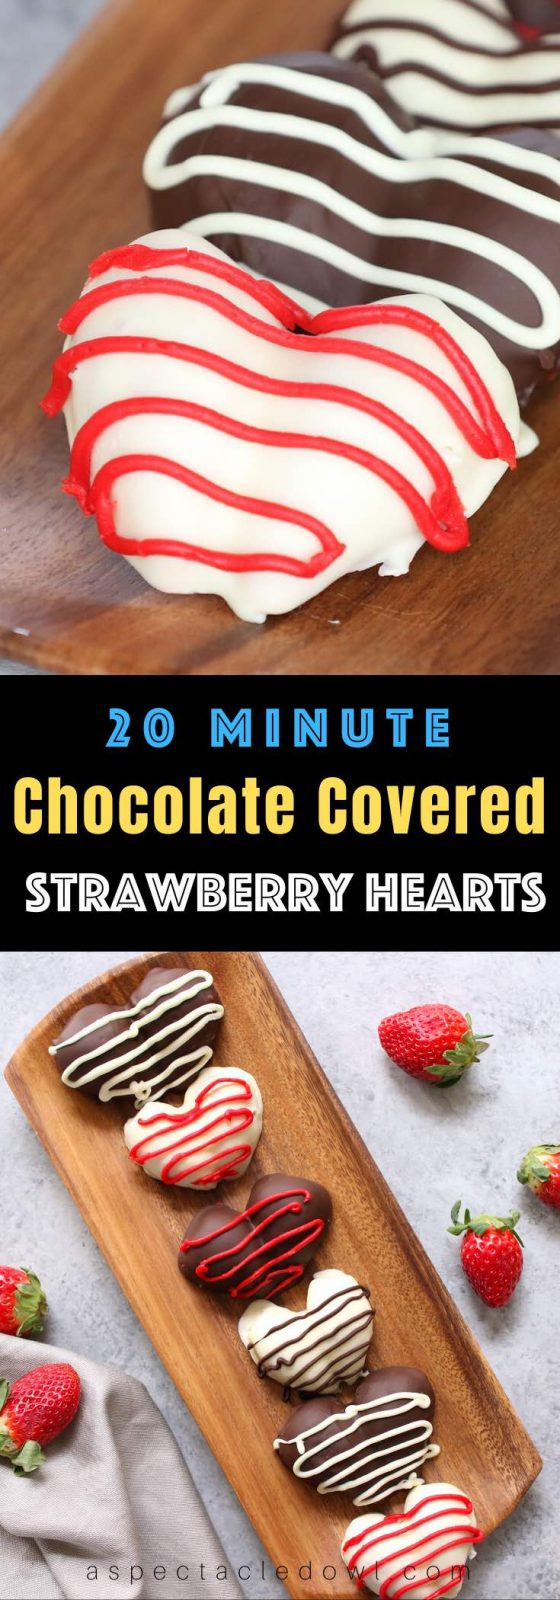 Chocolate Dipped Strawberries are an easy, delicious, beautiful treat that's great for valentine's gift or dessert. In addition to the regular strawberry shape, you can easily turn them into heart-shaped strawberries. Here is a step-by-step guide to how to make chocolate strawberries! #ChocolateCoveredStrawberries #ValentinesDessert